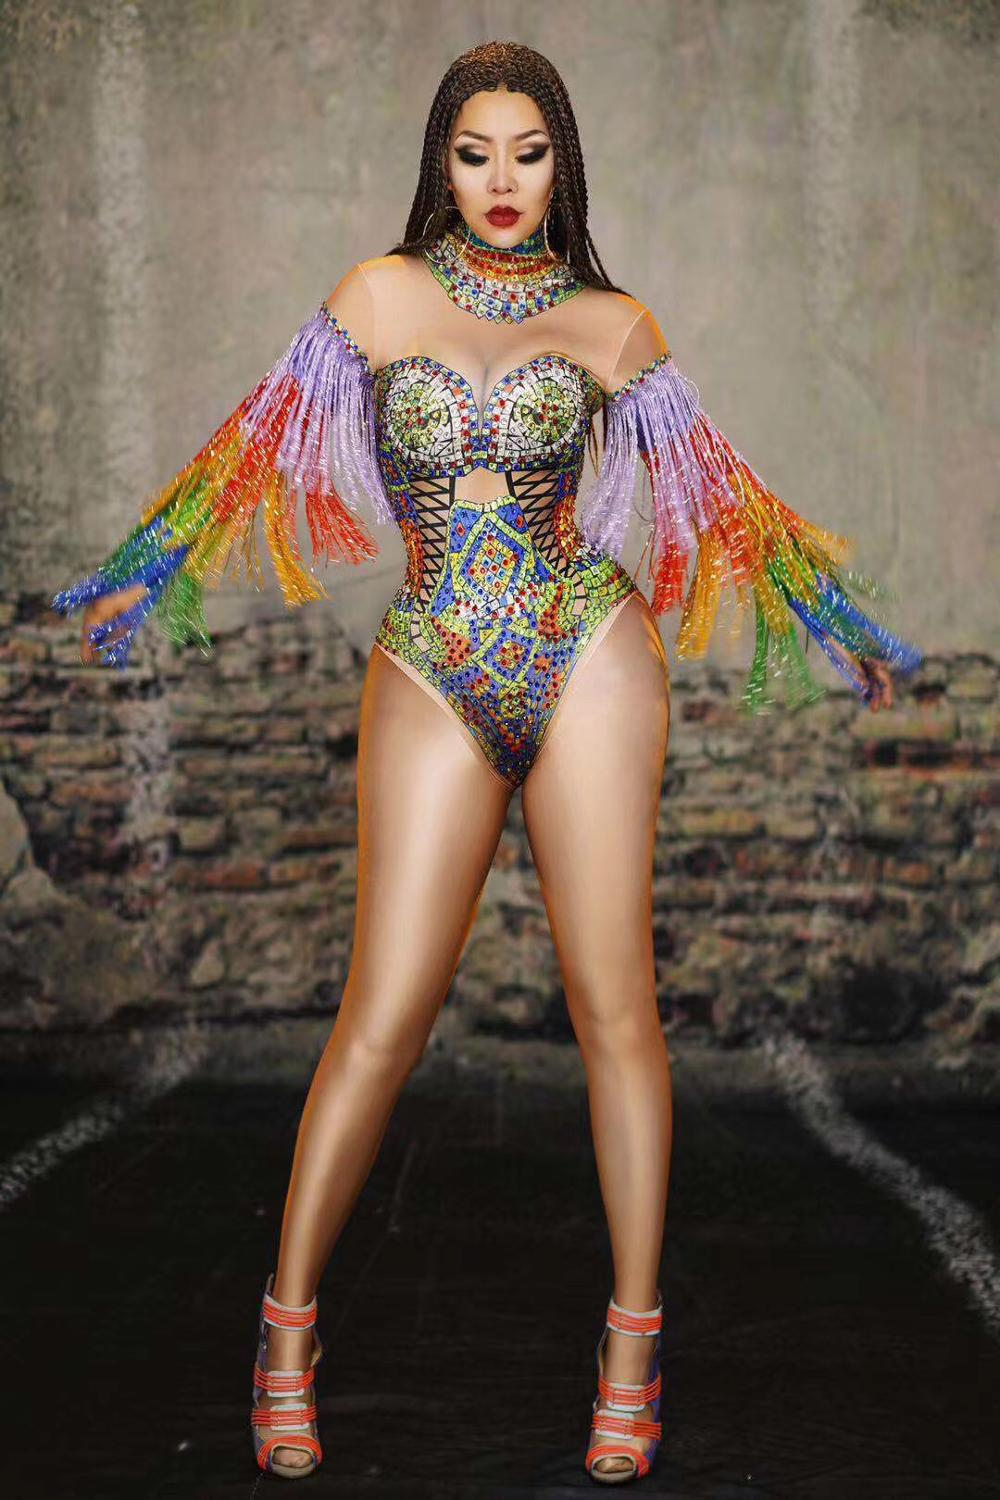 2020 Women New Colorful Rhinestones Fringes Leotard Costume Birthday Prom Celebrate Outfit Bar Evening Women Dancer Bodysuit